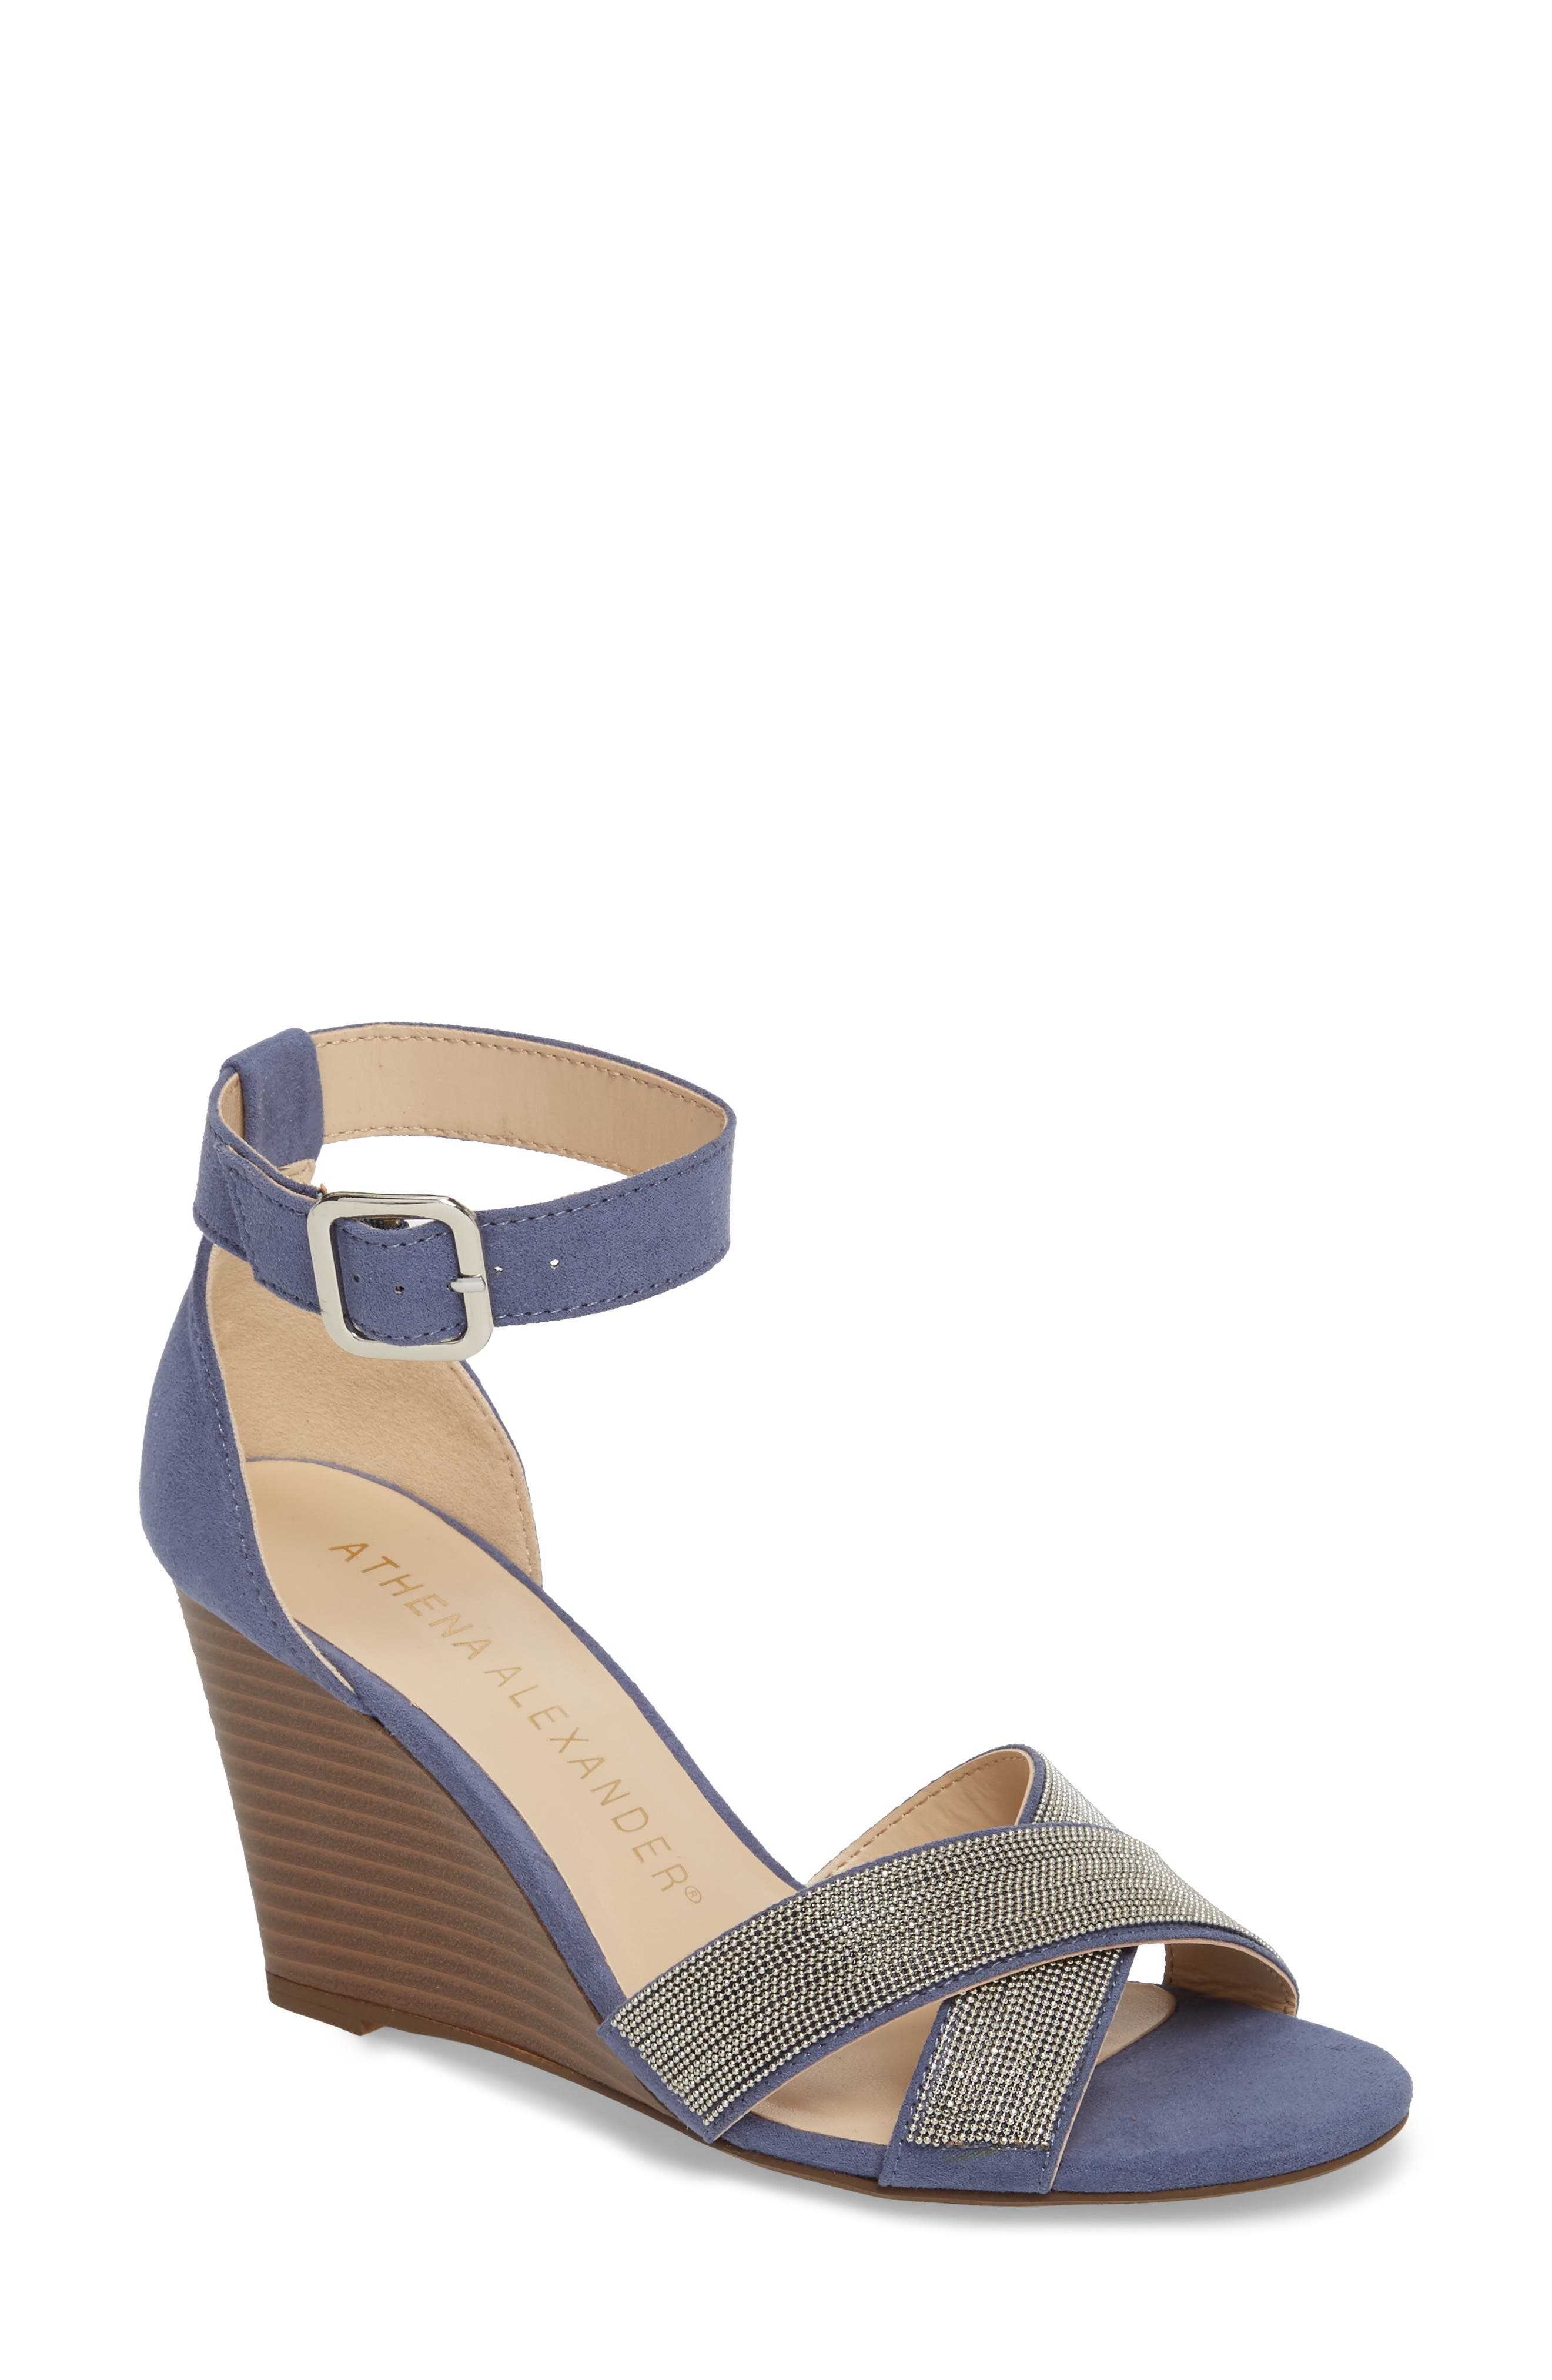 Zorra Wedge Sandal,                             Main thumbnail 1, color,                             Blue Suede